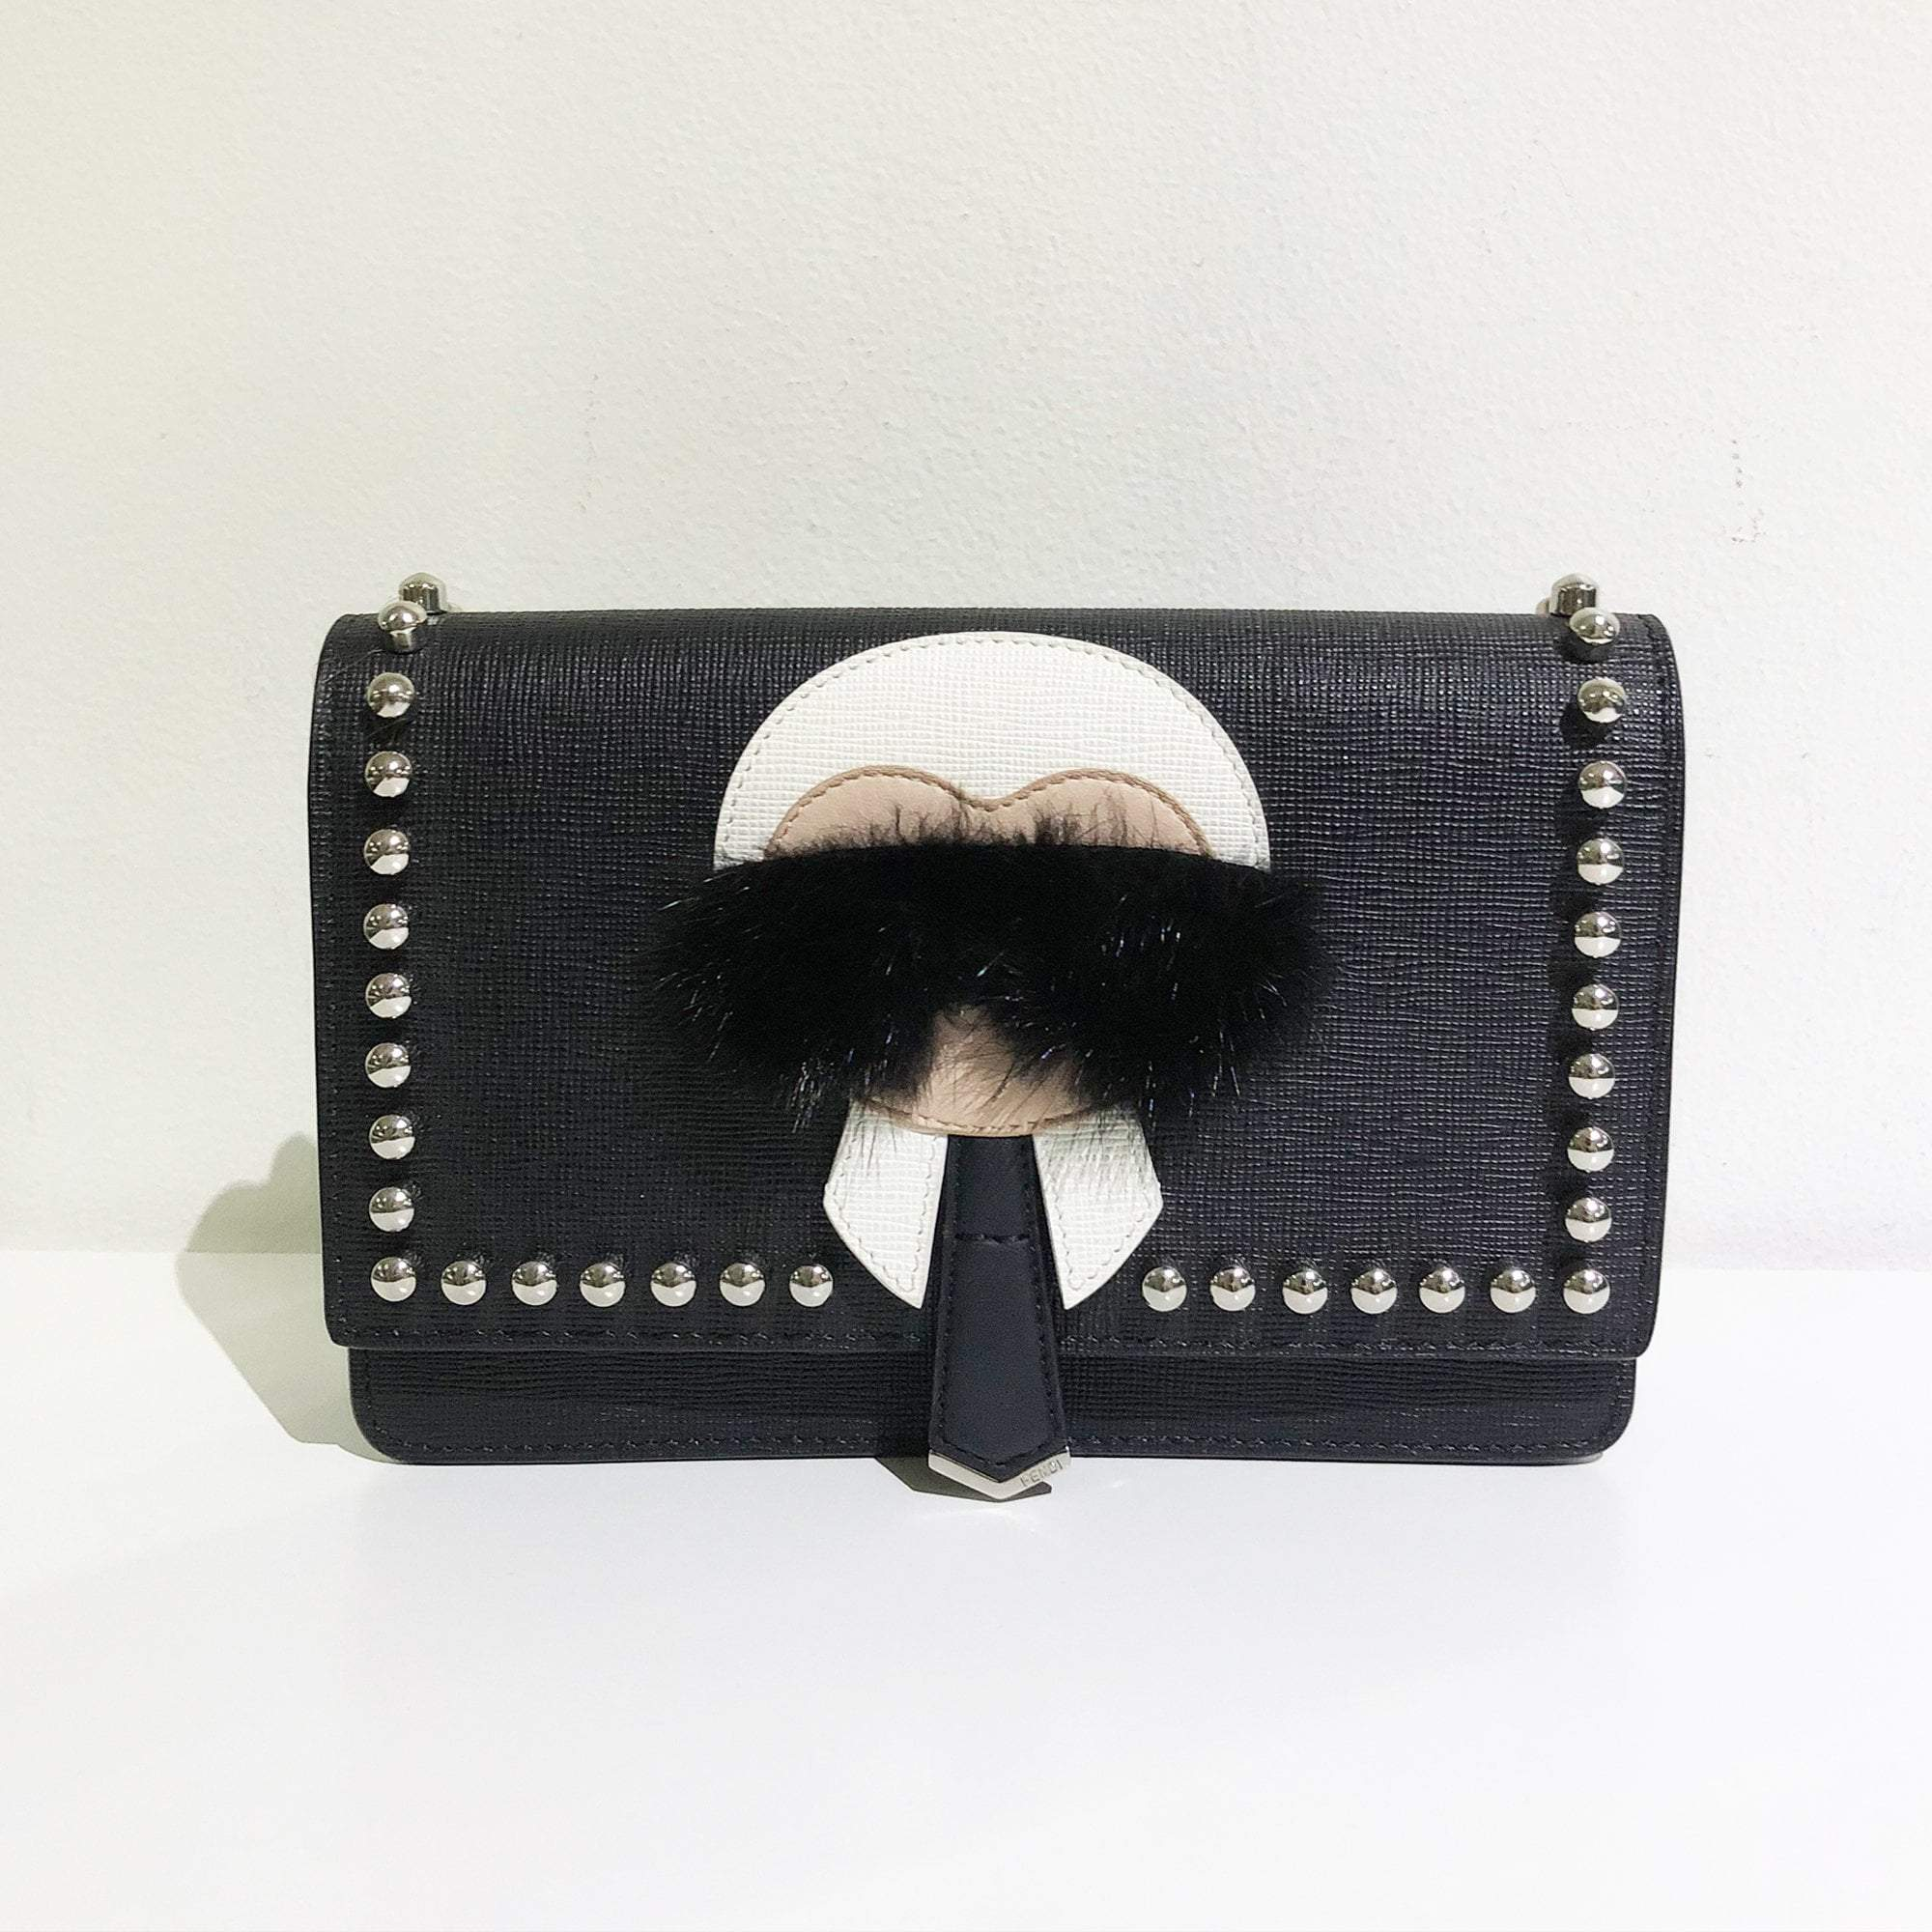 Karlito wallet - Black Fendi